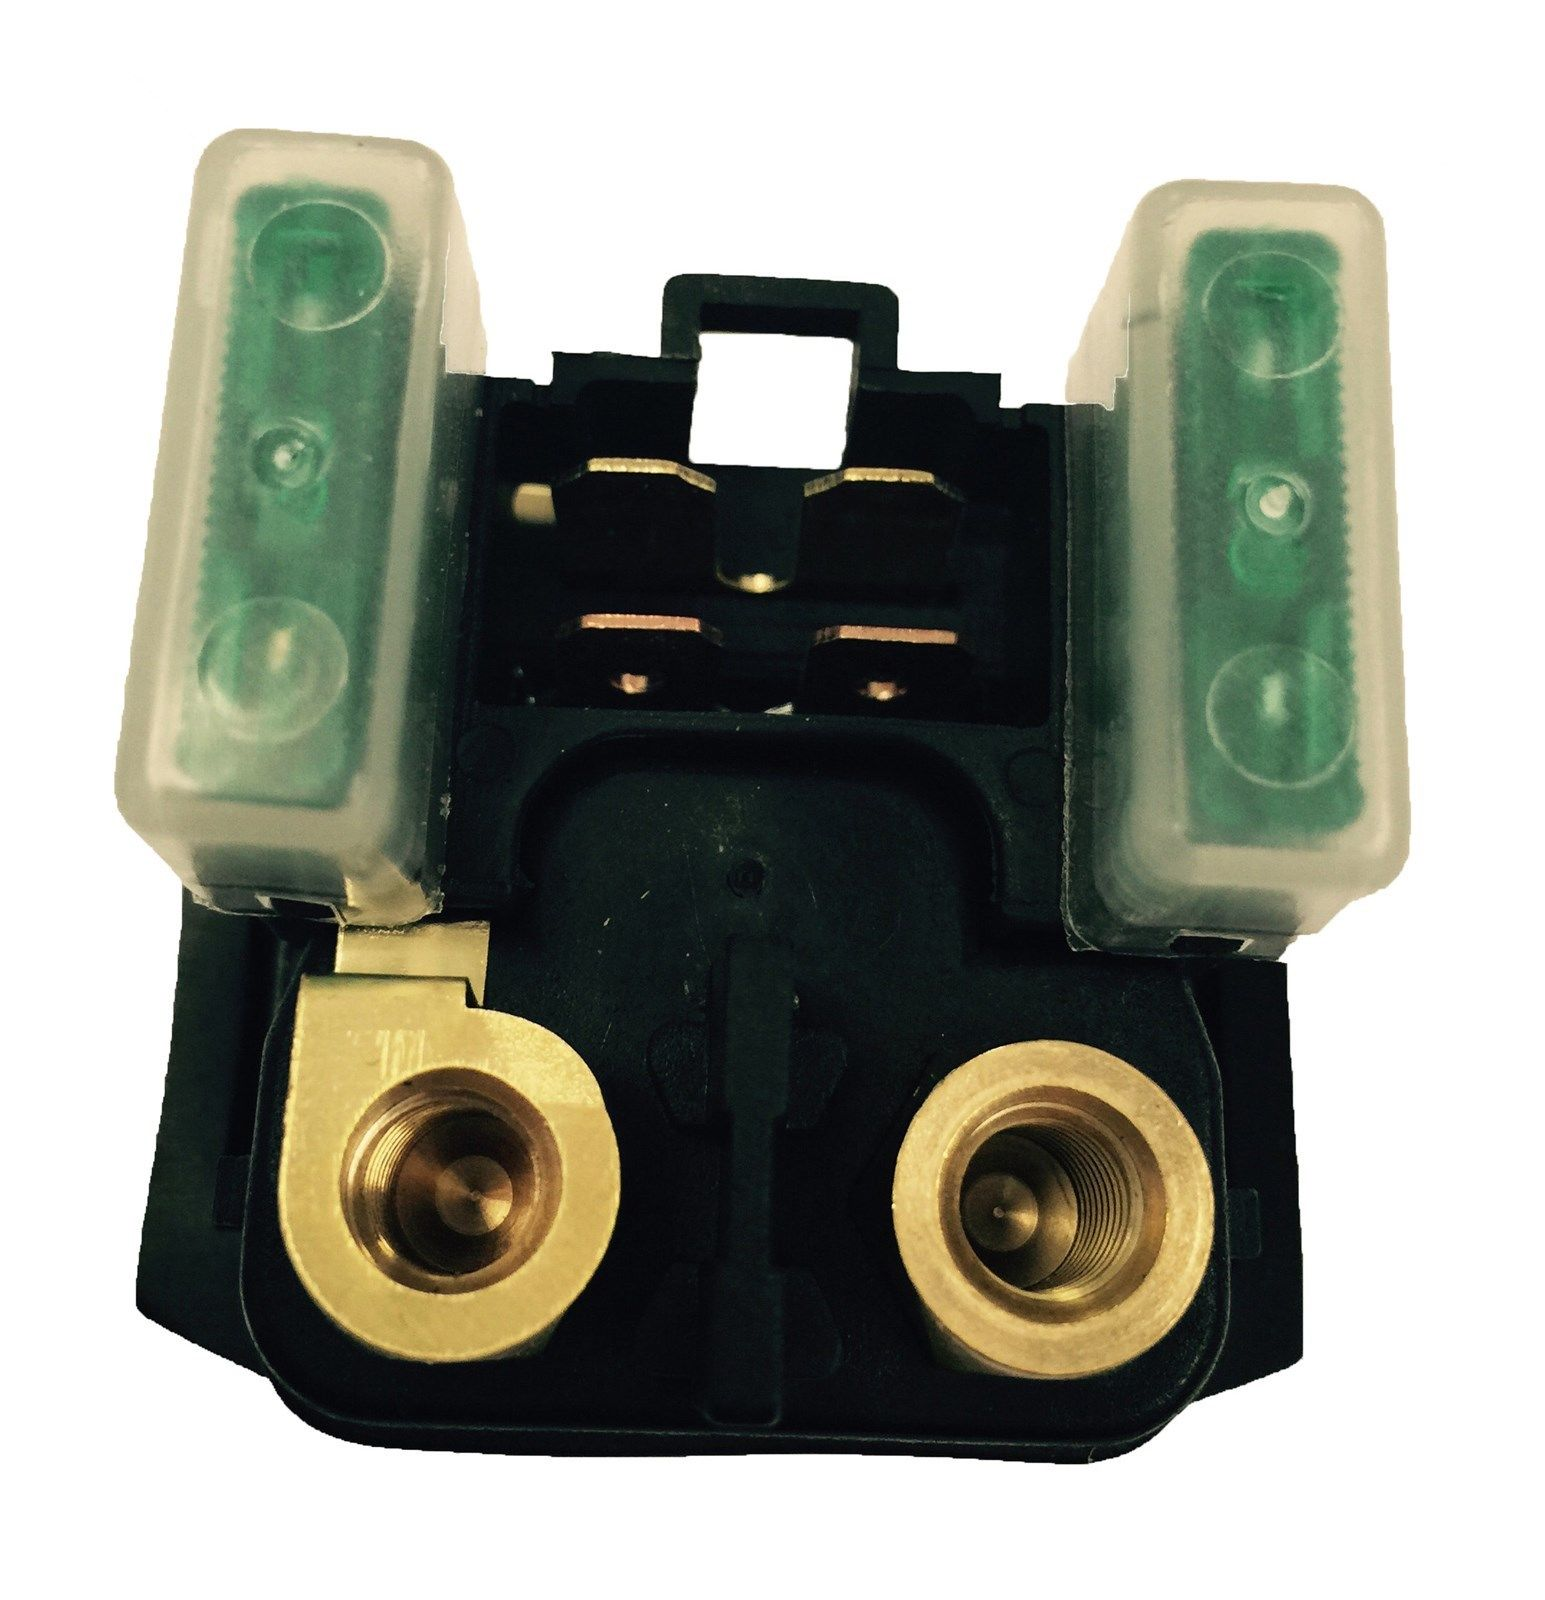 hight resolution of new premium quality starter solenoid relay for yamaha replaces 4sv 81940 12 00